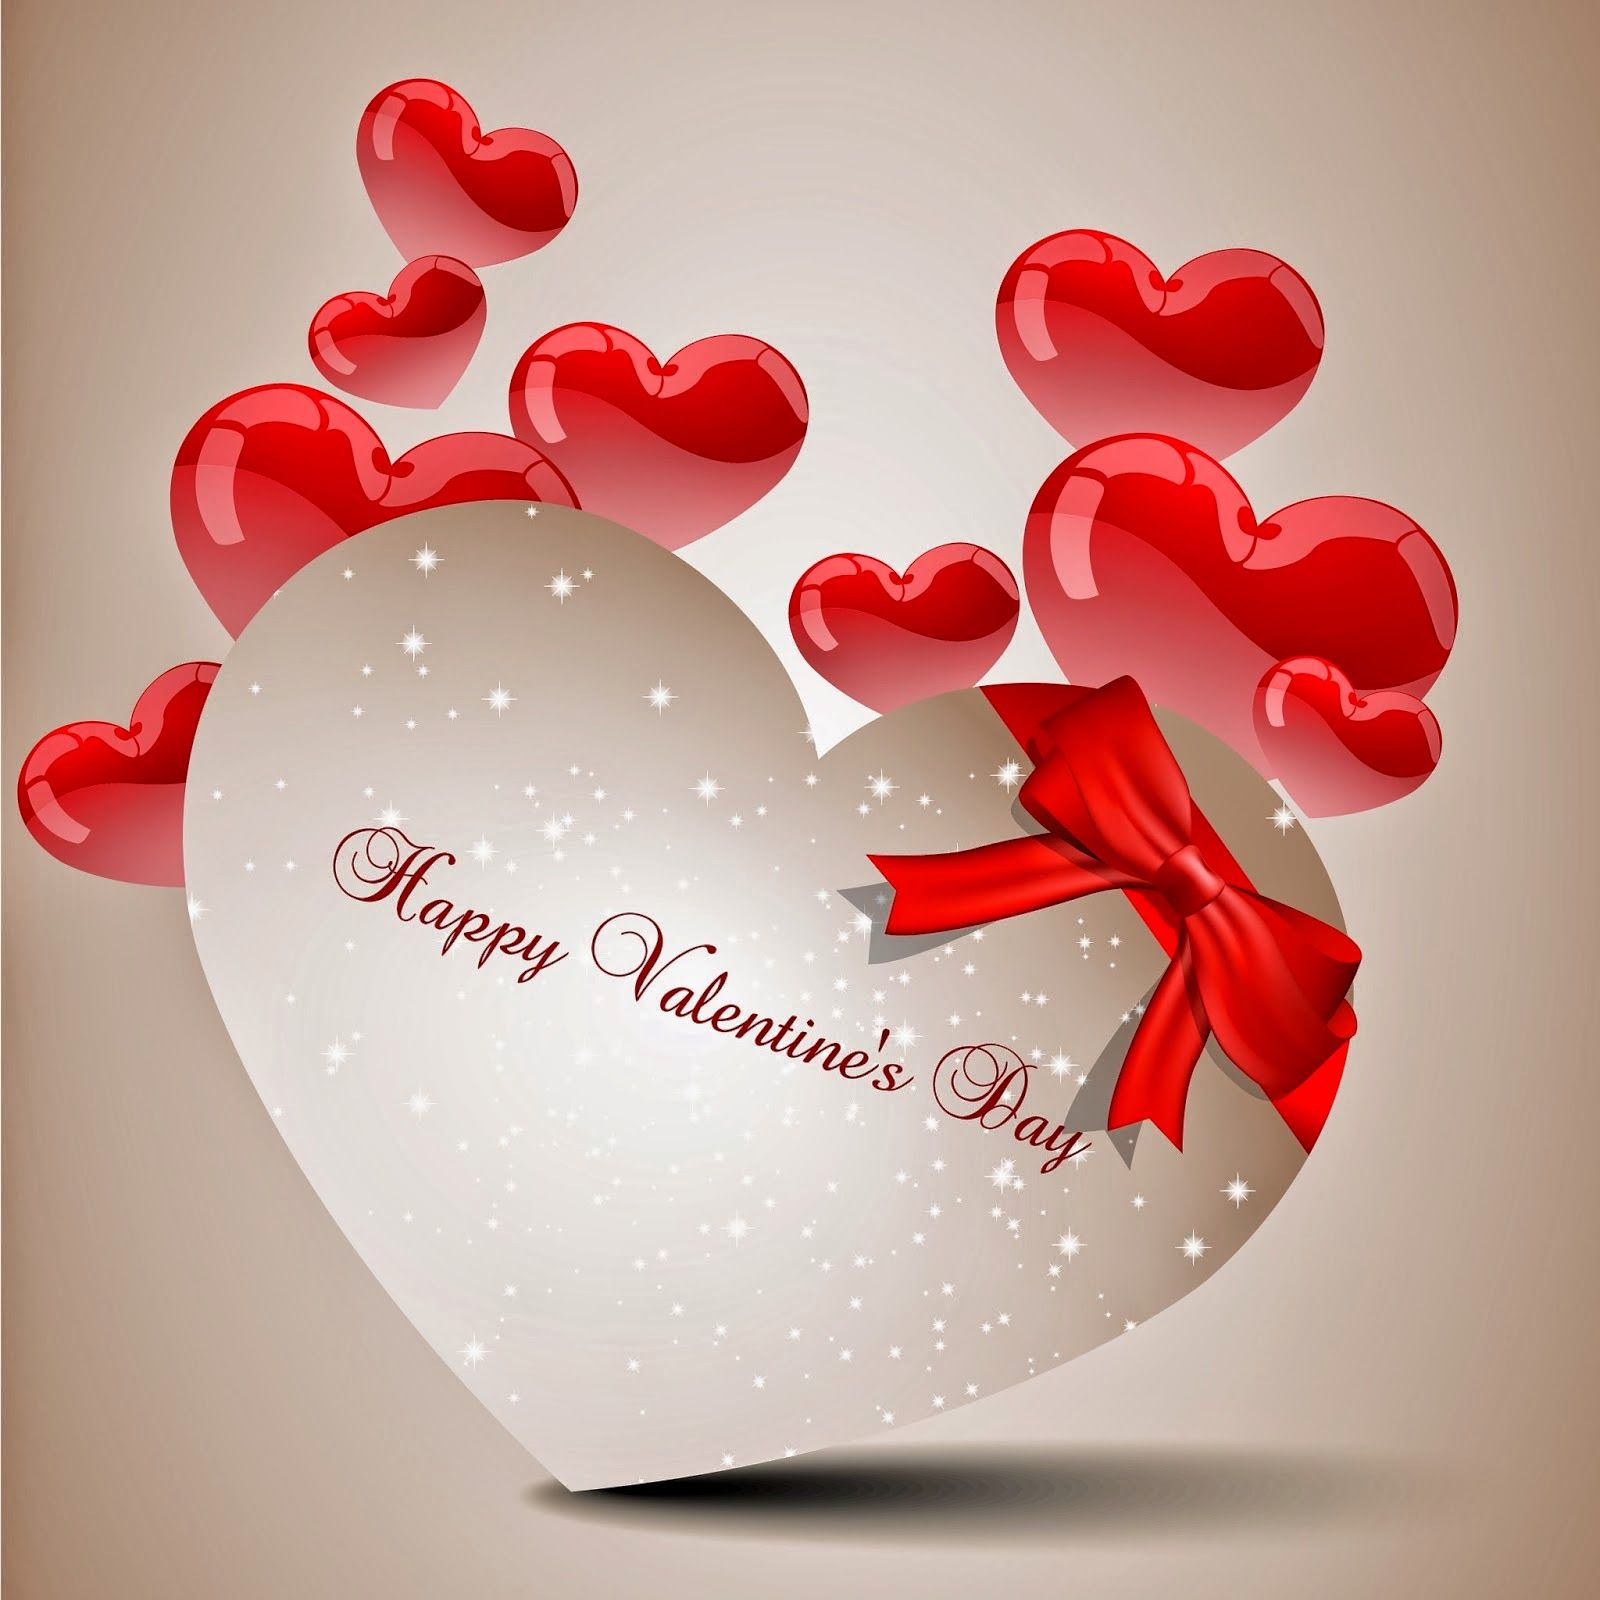 Happy Valentines Day Check Out More Exciting HD Wallpapers – Happy Valentines Day 2015 Cards